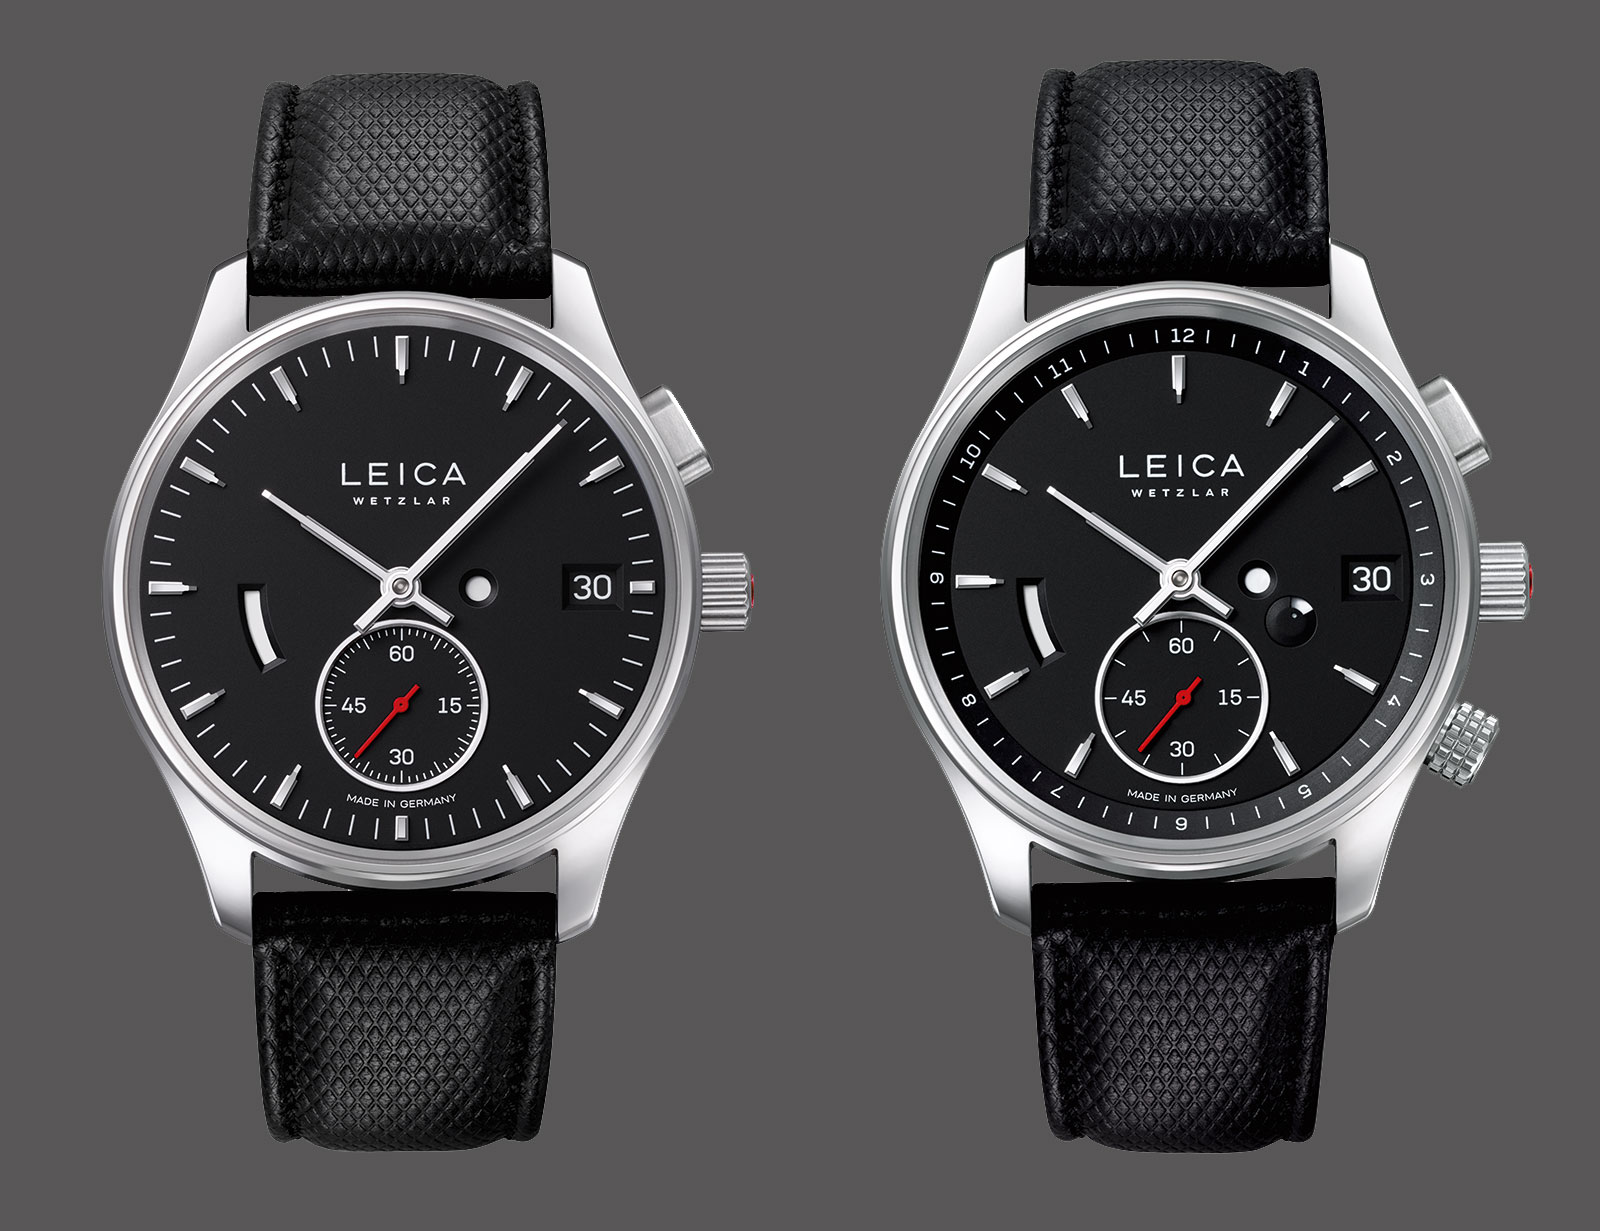 leica introduces the l1 and l2 watches sjx watches